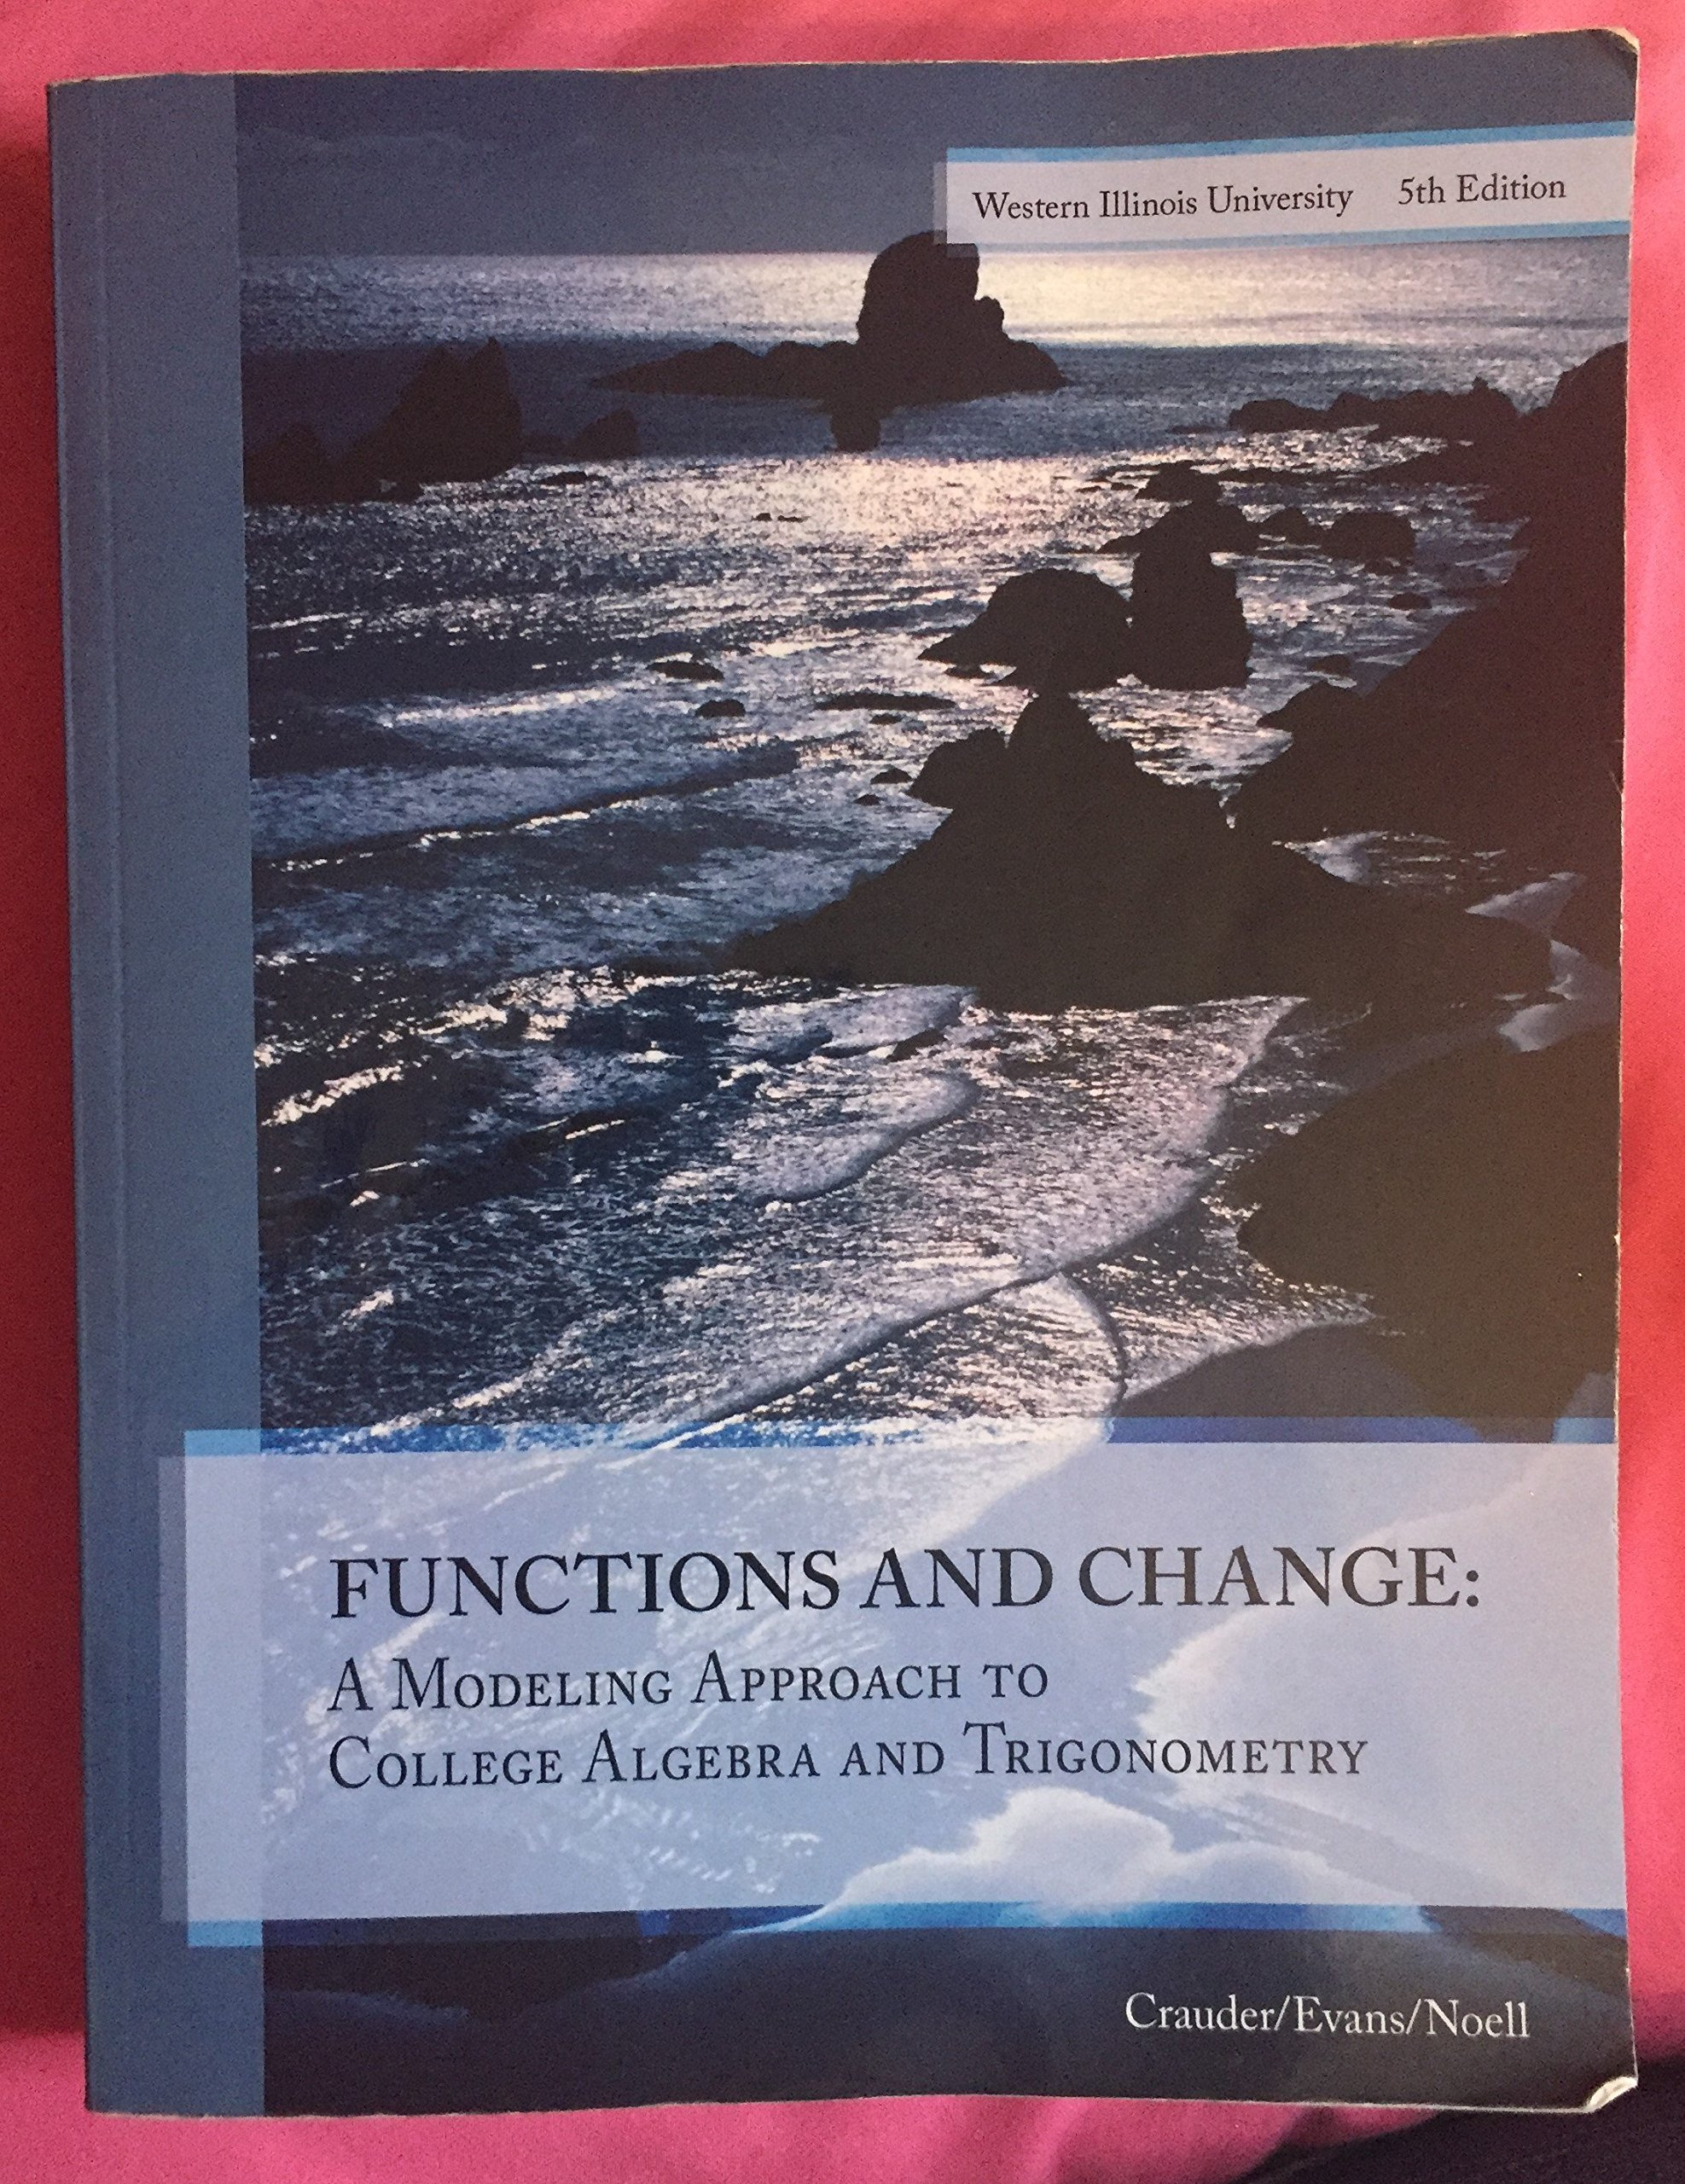 Functions and Change: A Modeling Approach to College Algebra and Trigonometry